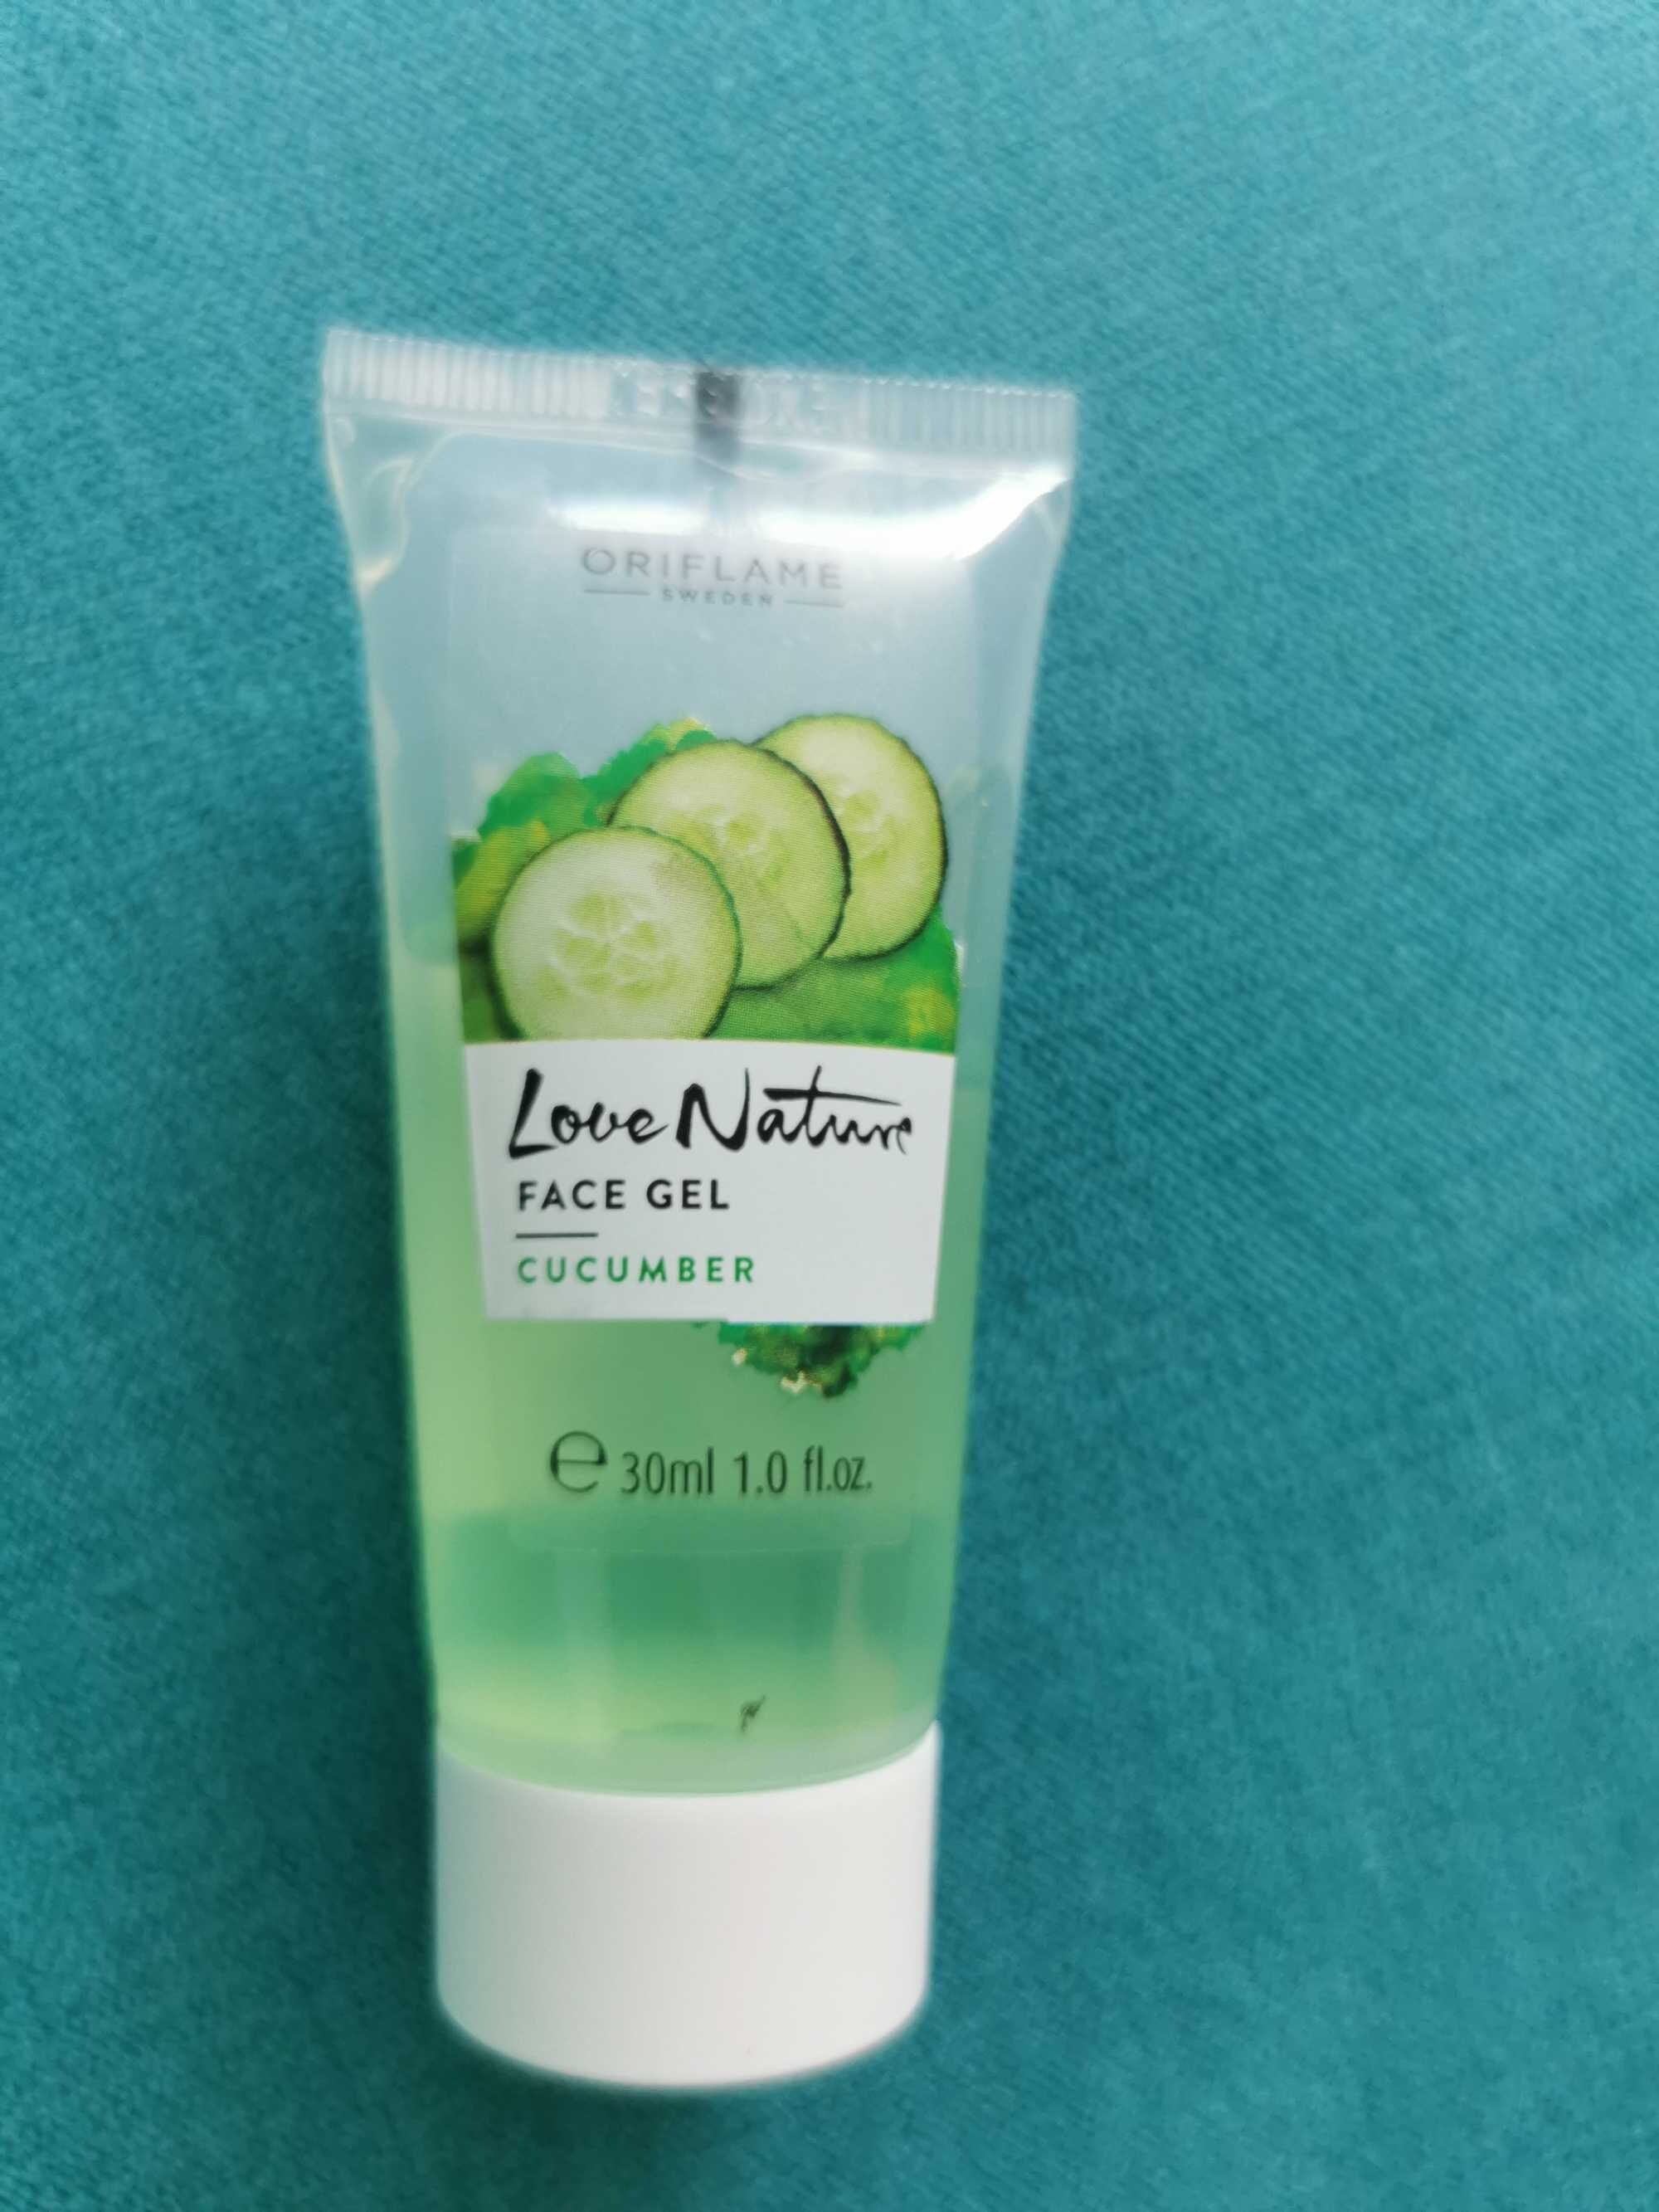 Love nature face gel cucumber - Product - ro